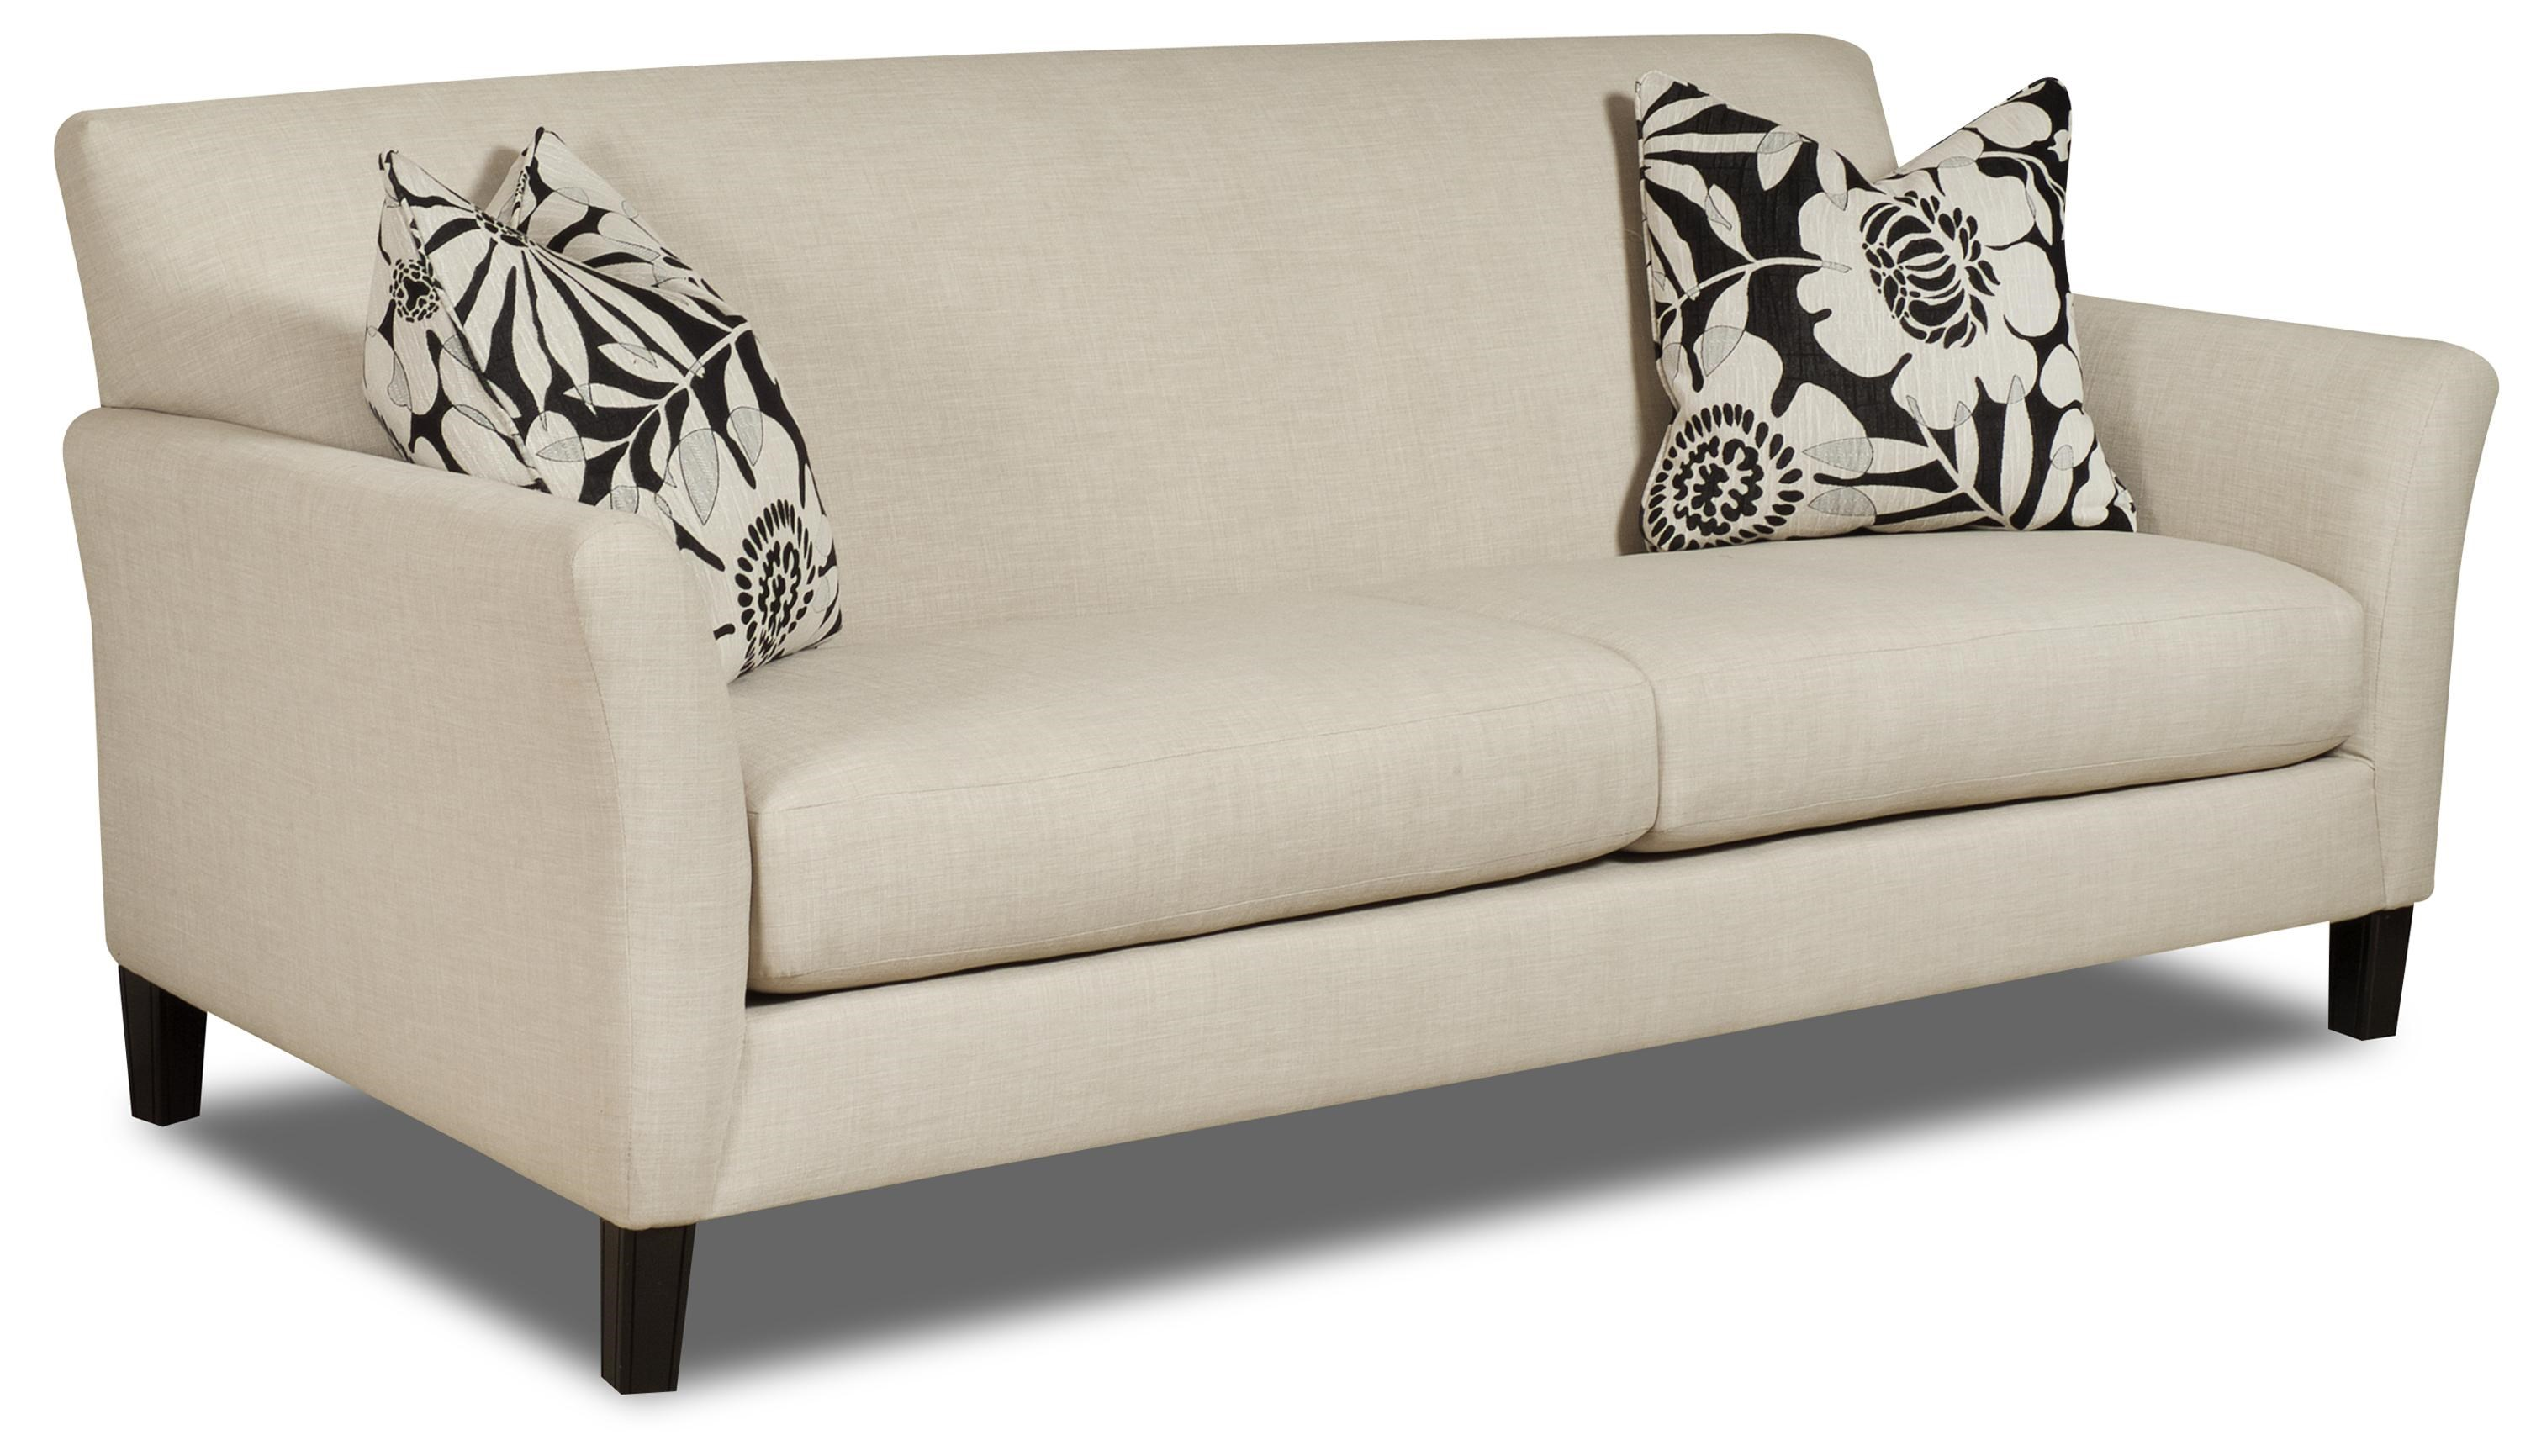 Charmant C35 Contemporary Flared Track Arm Sofa With Exposed Tapered Feet By Bauhaus